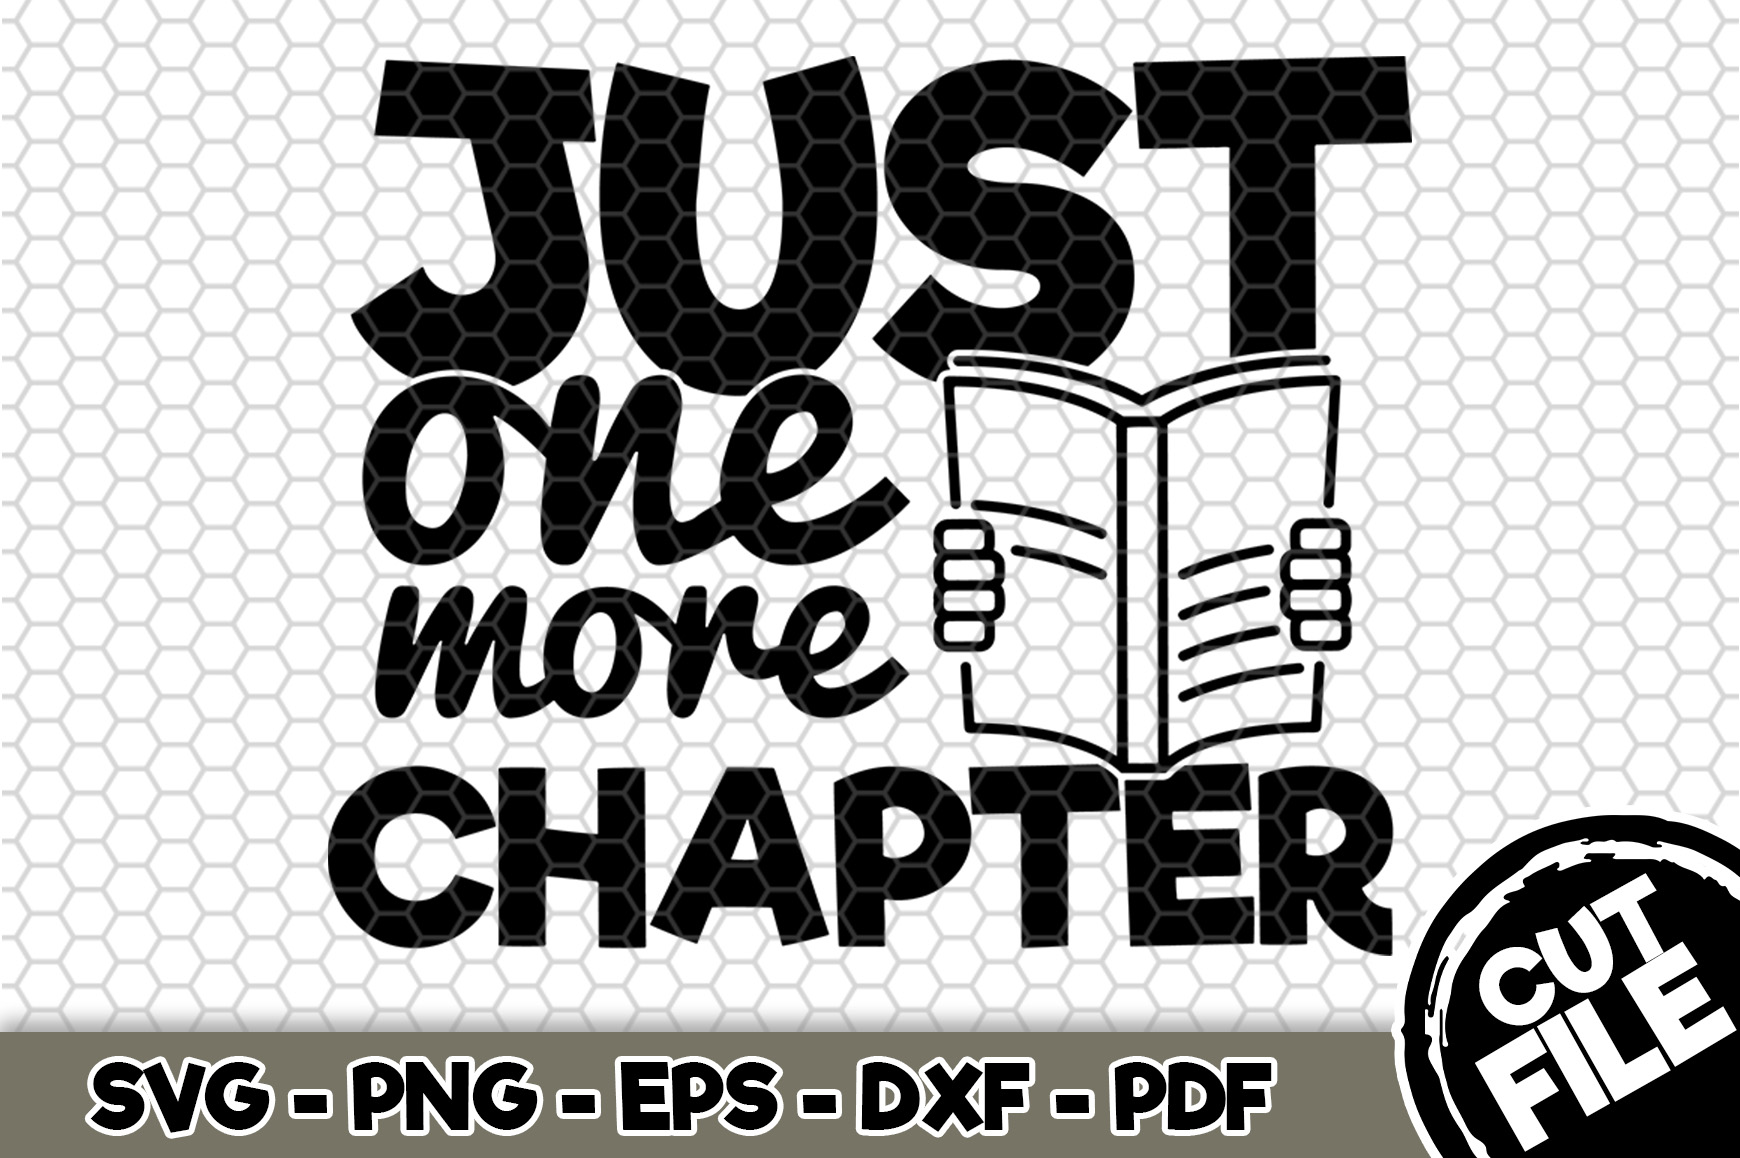 Download Free Just One More Chapter Graphic By Svgexpress Creative Fabrica for Cricut Explore, Silhouette and other cutting machines.